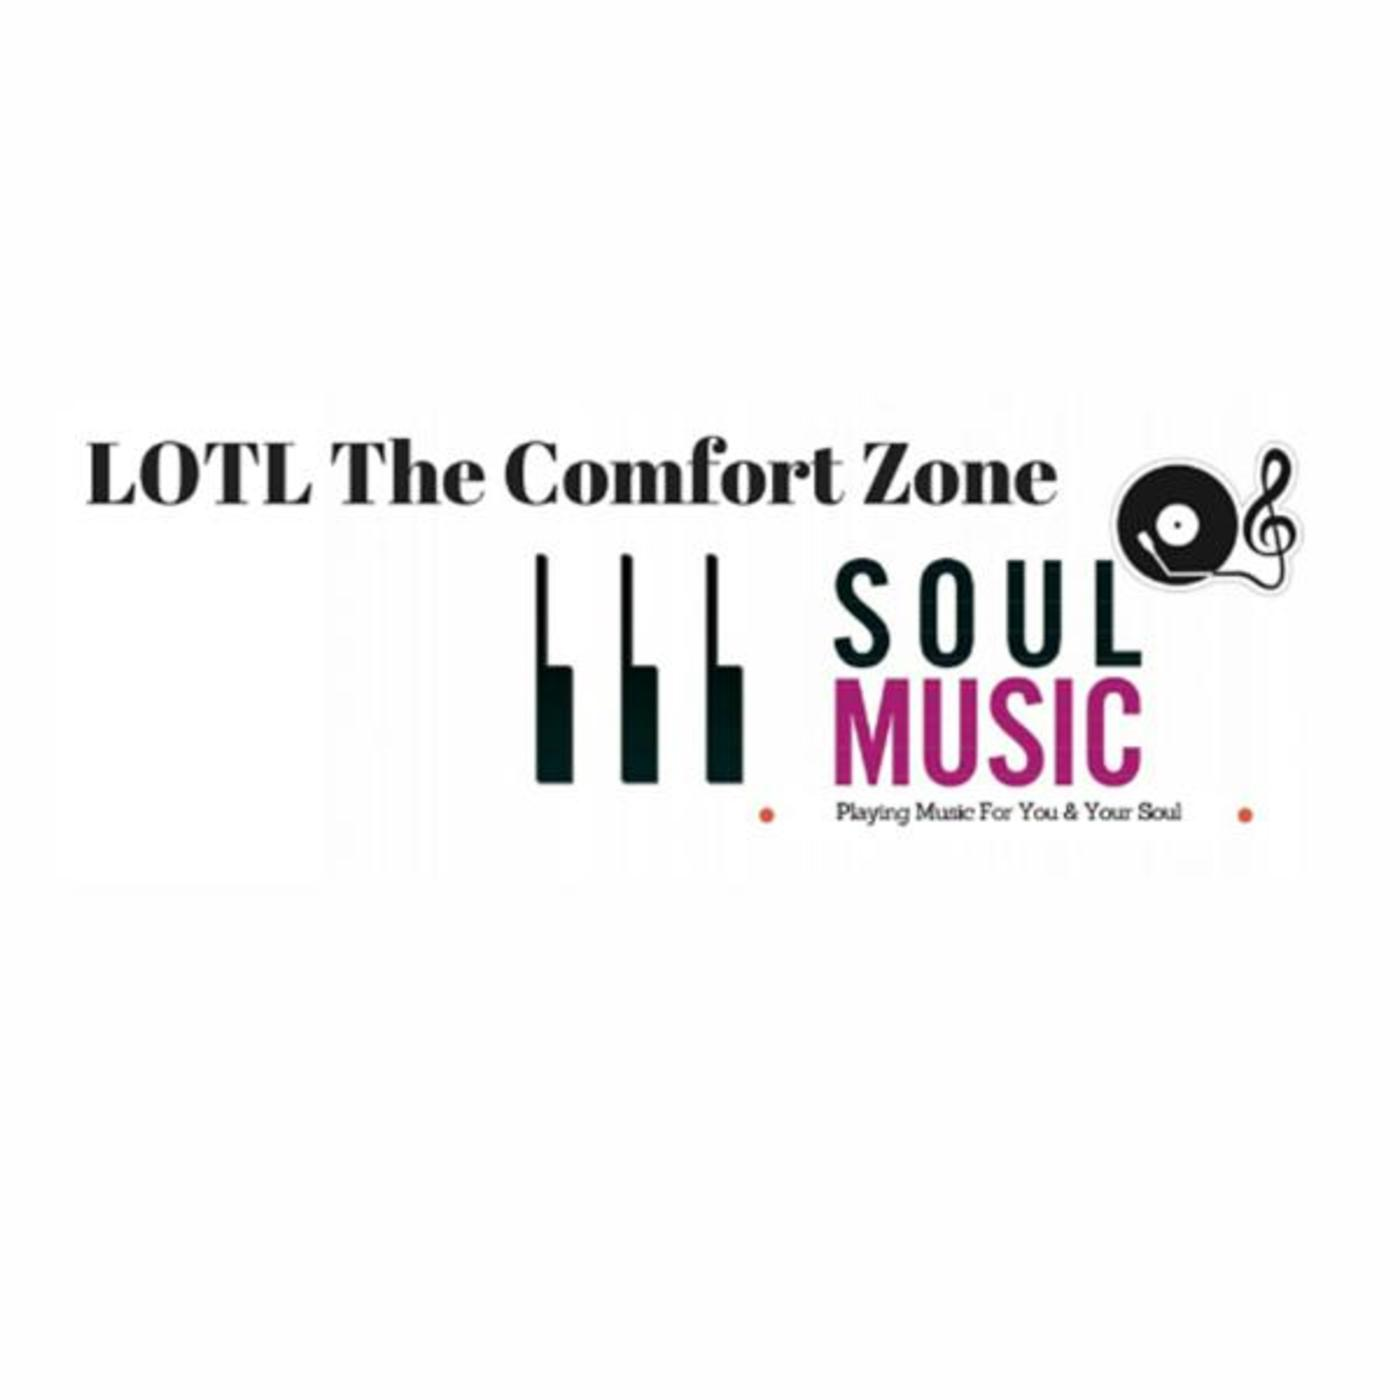 LOTL-Radio The Comfort Zone